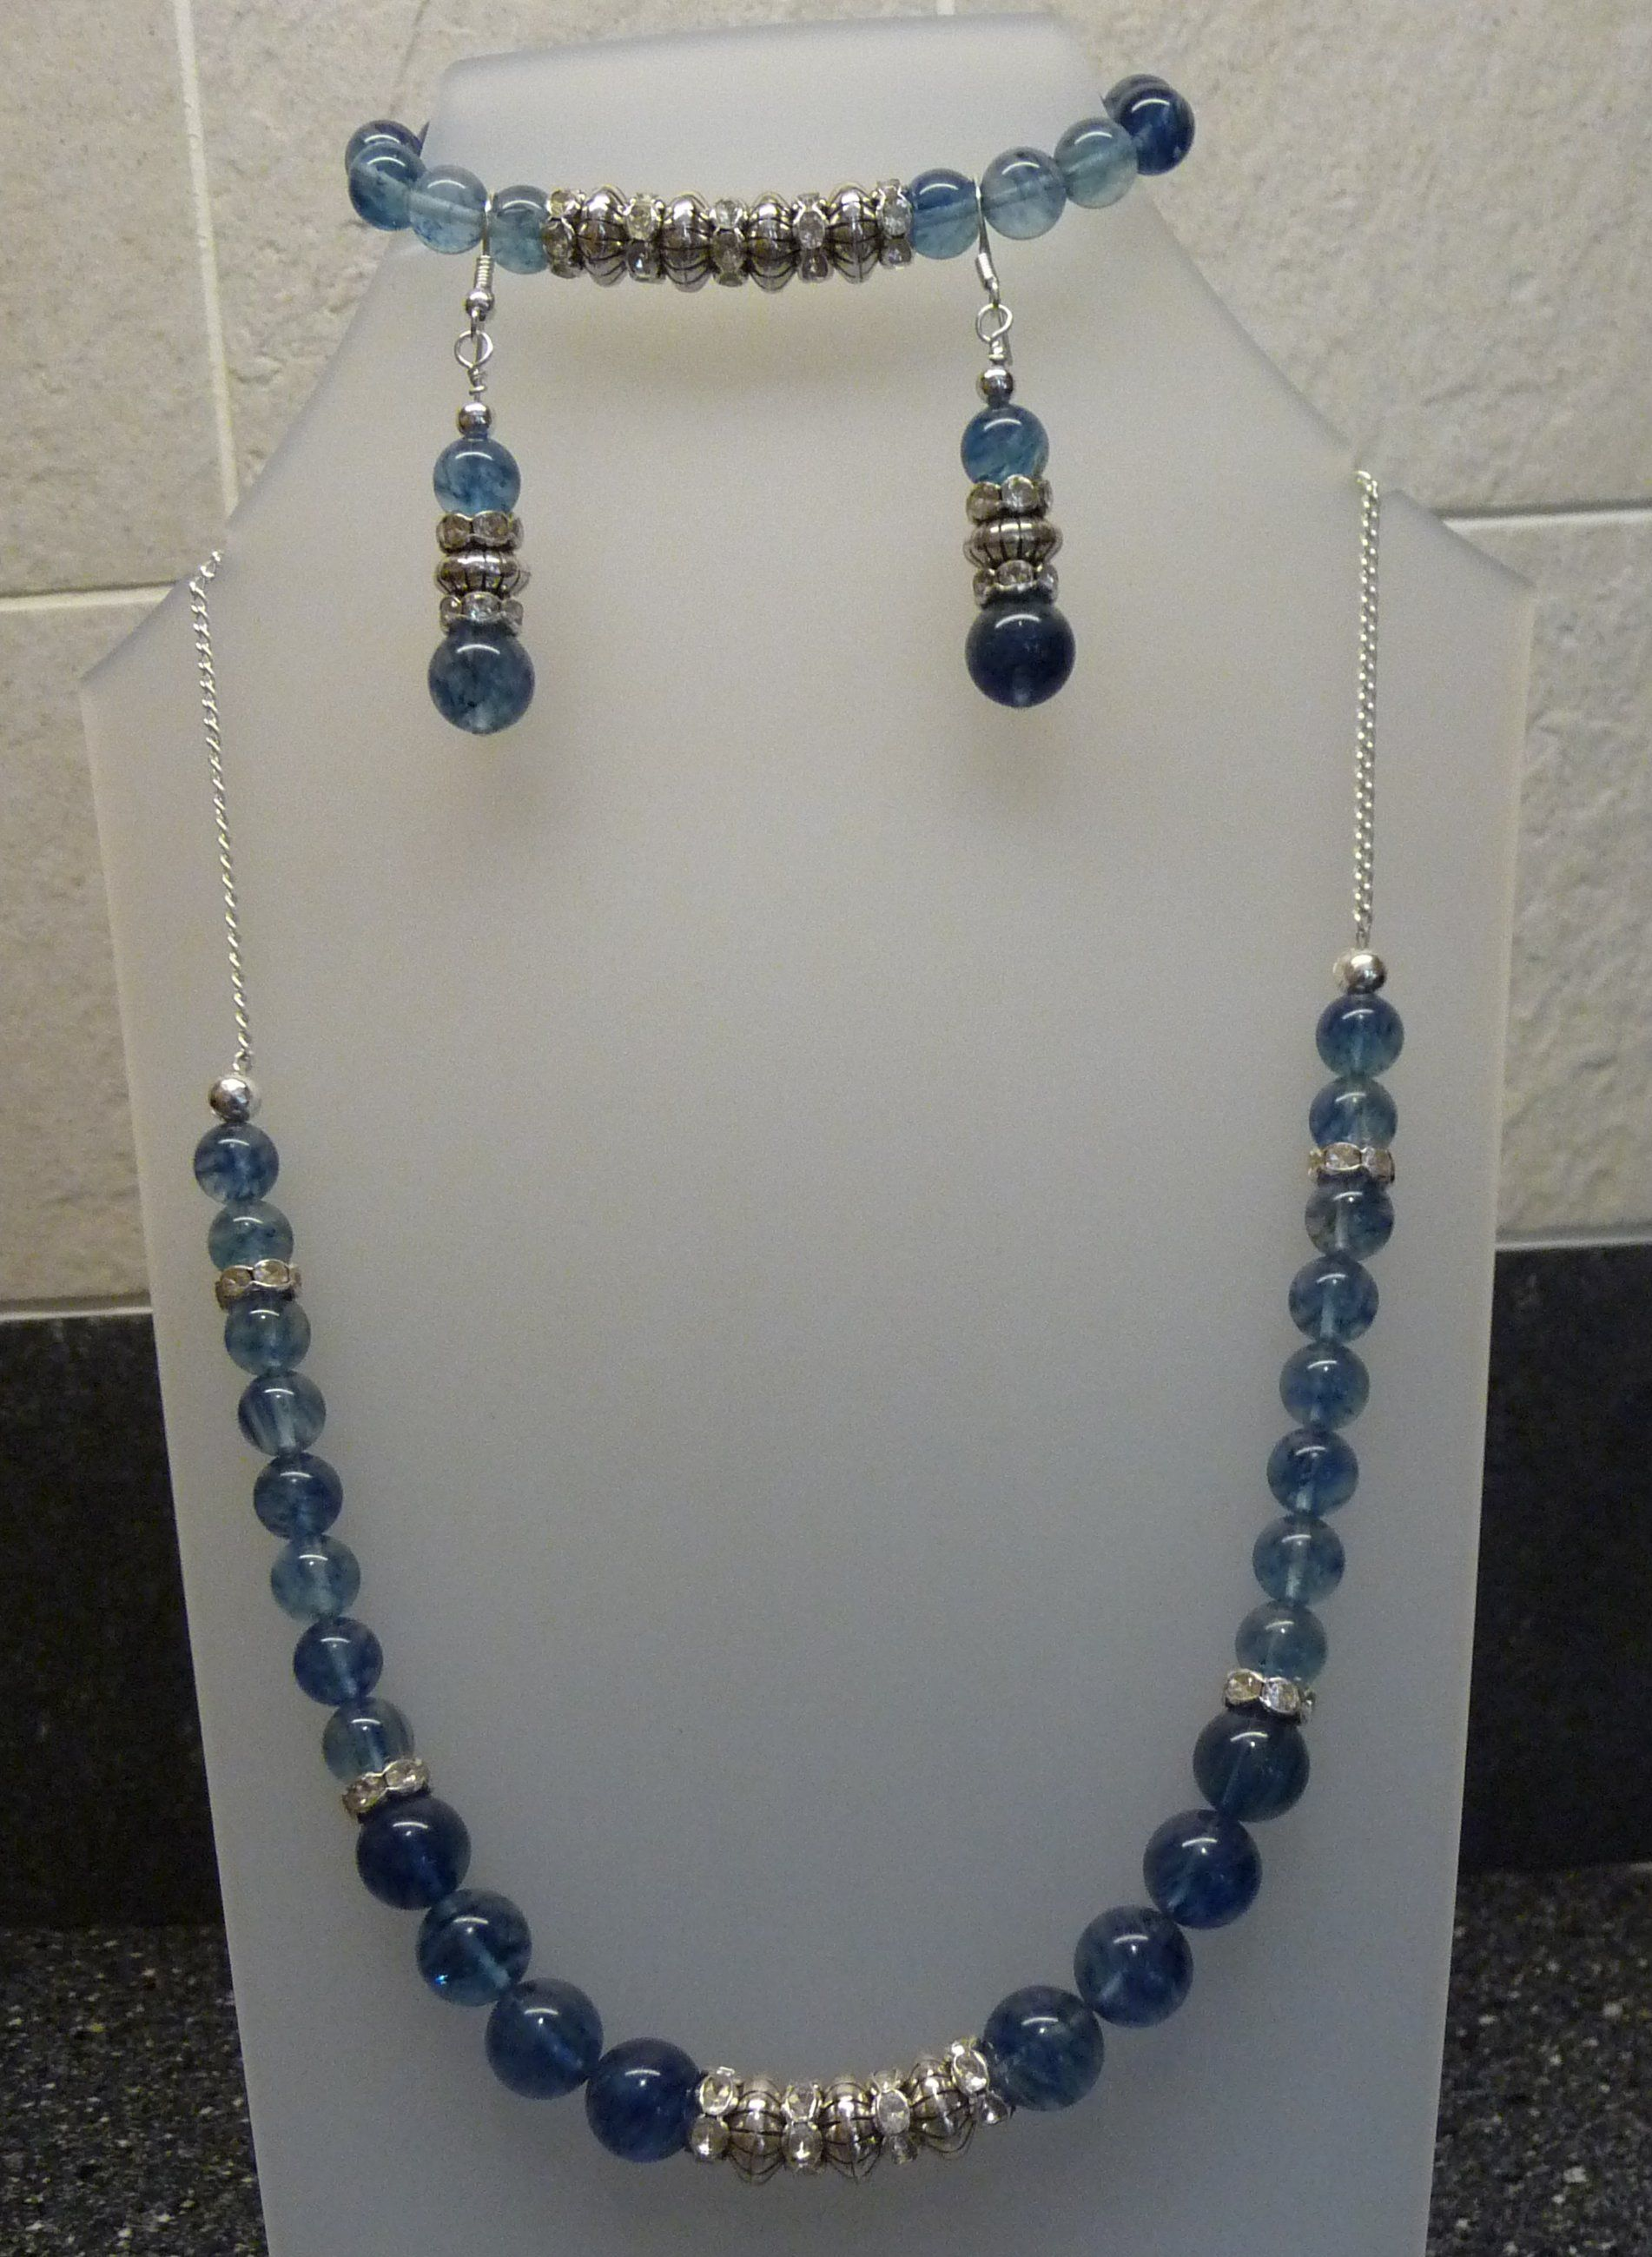 Lovely set made with rondelles and genuine gemstones